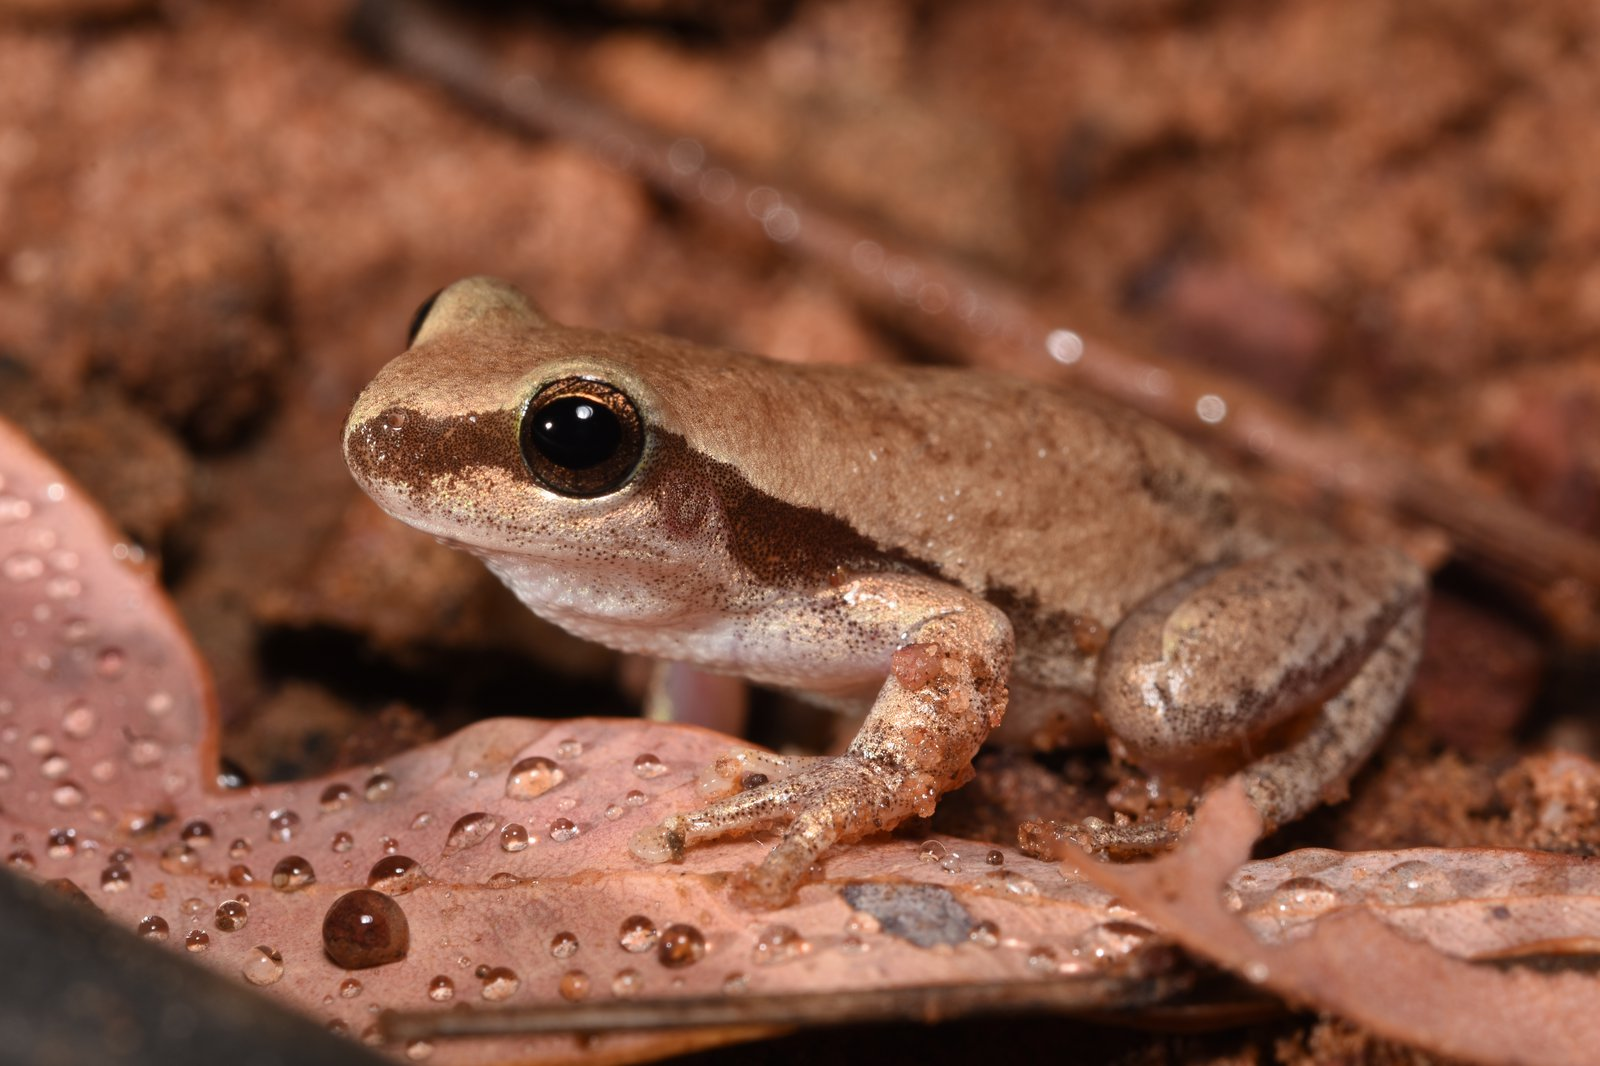 Red Tree Frog (Litoria rubella).